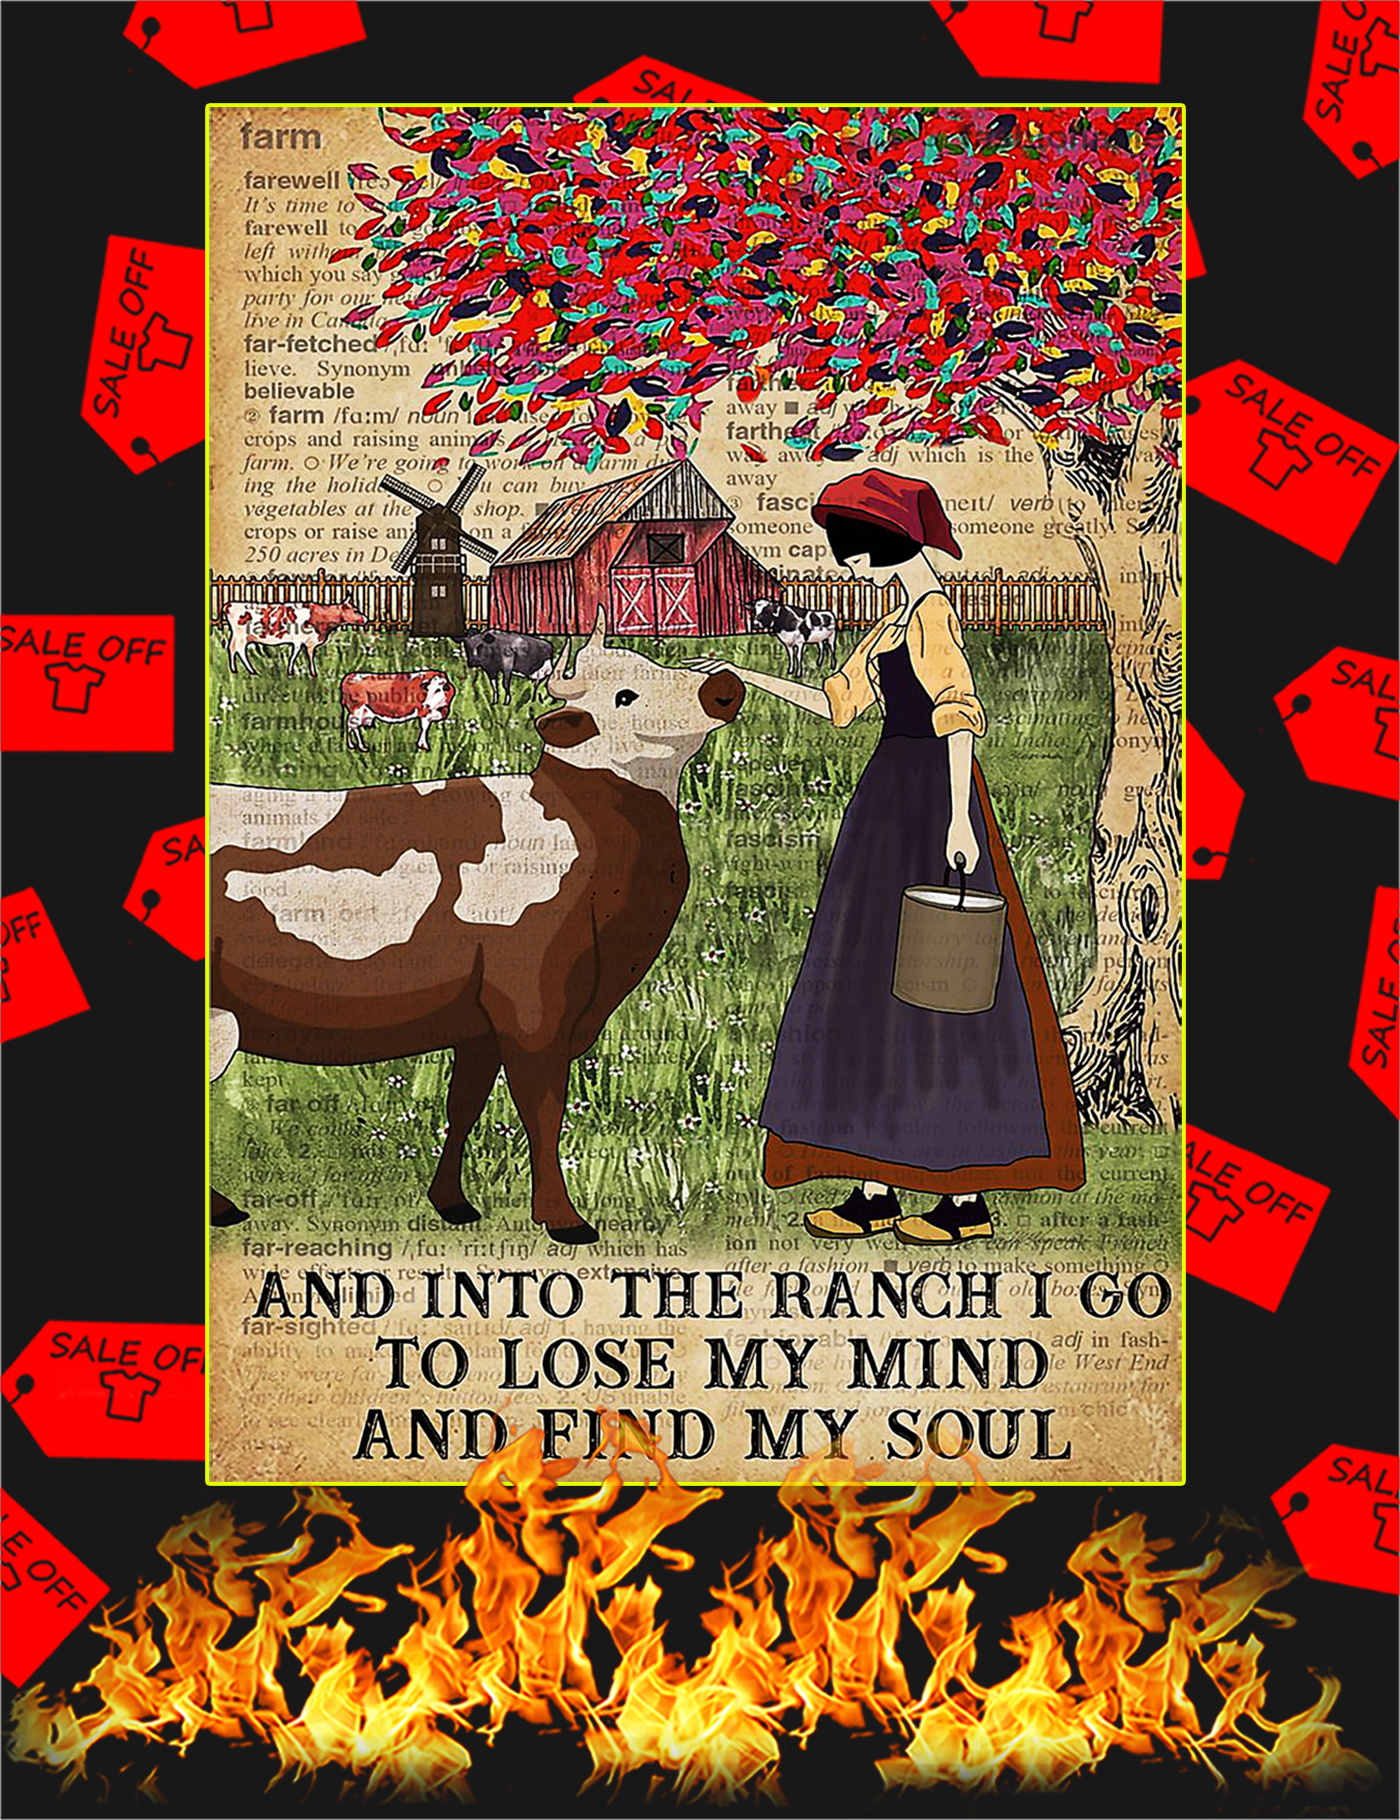 Dictionary cattle farm girl And into the ranch I go to lose my mind and find my soul poster - A1